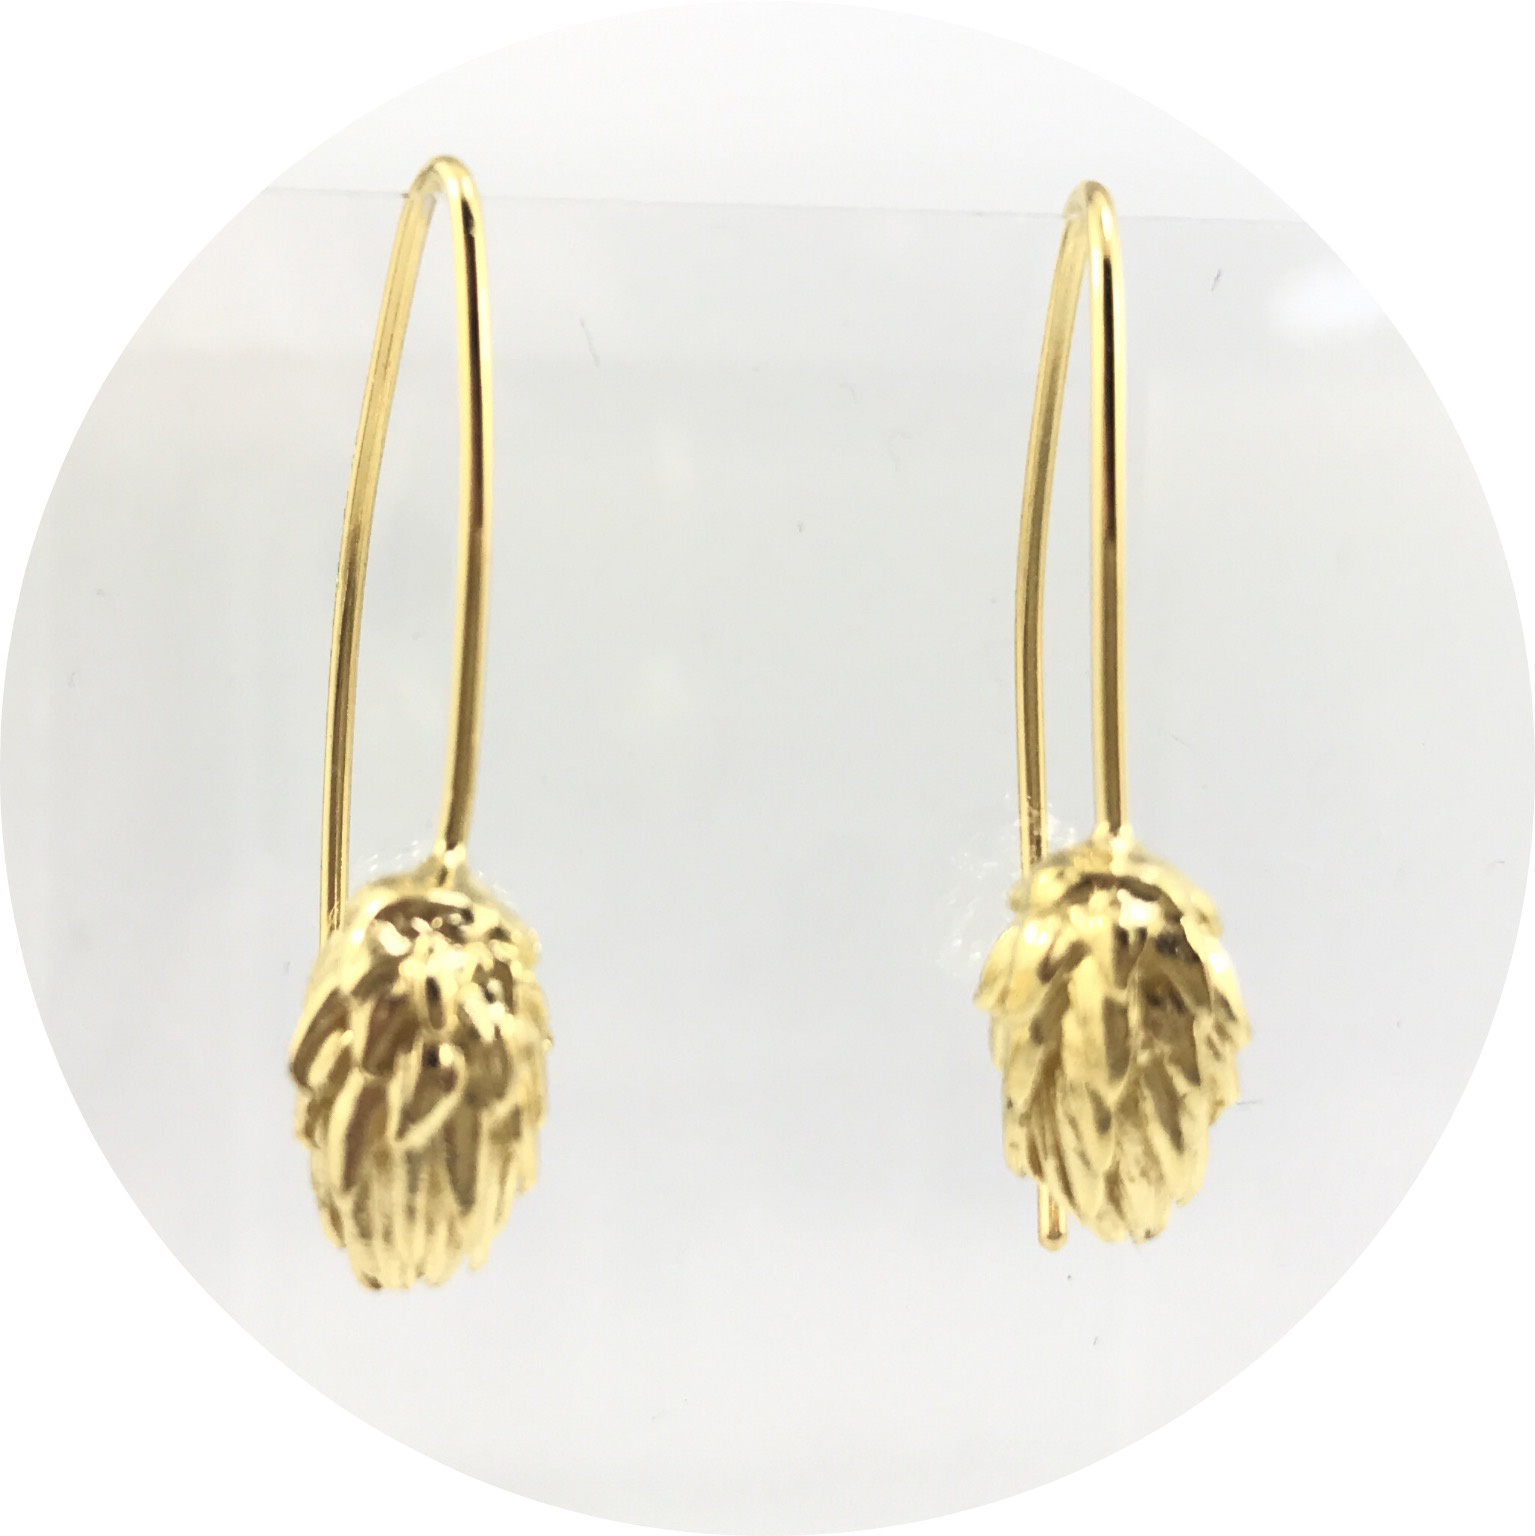 Manuela Igreja- pine sprout hook earrings. yellow gold plated sterling silver.